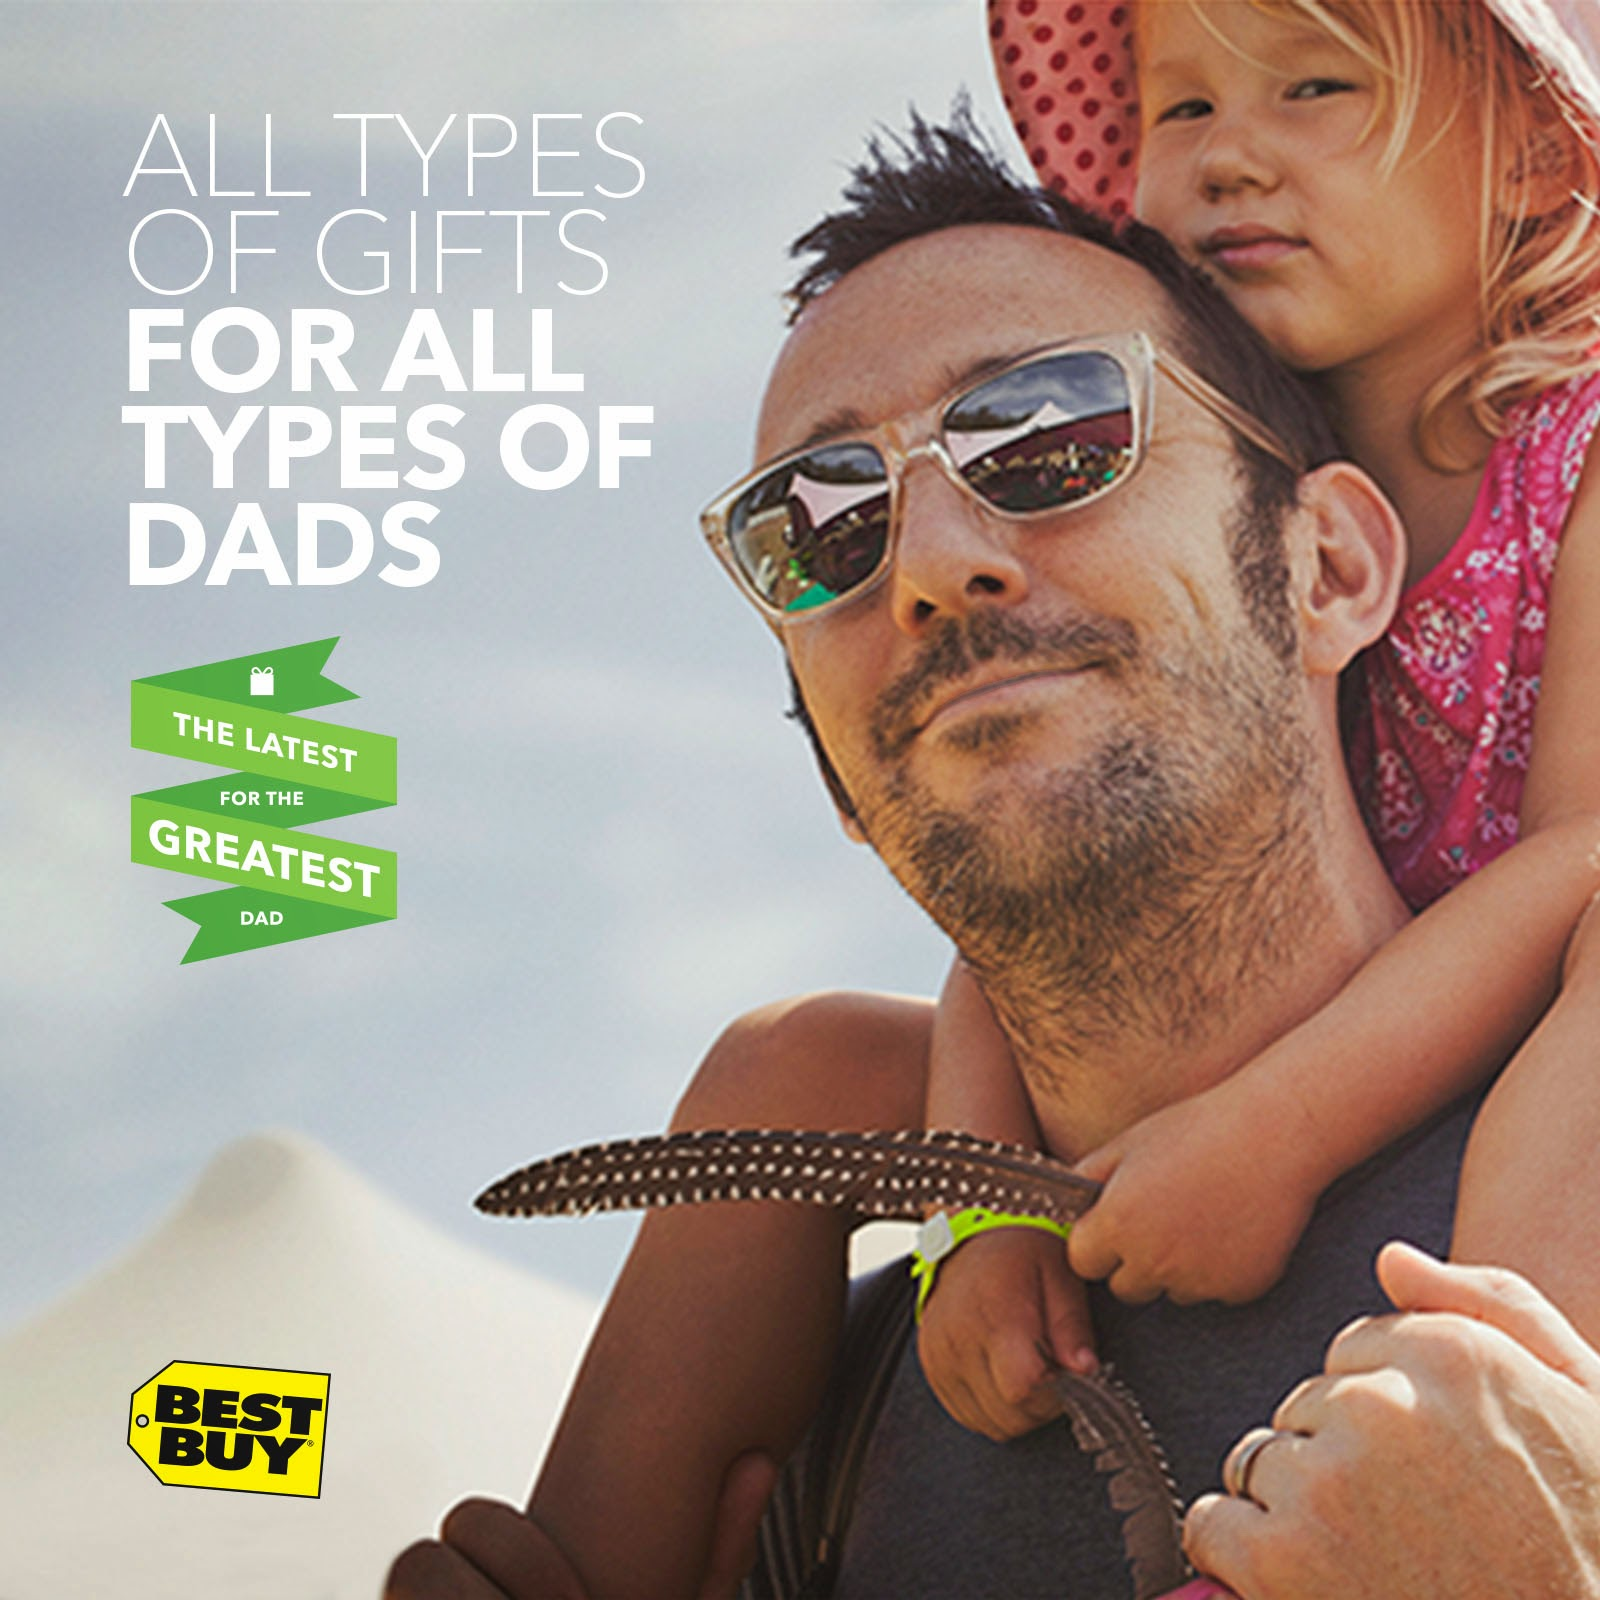 All types of gifts for all types of dads @ Best Buy